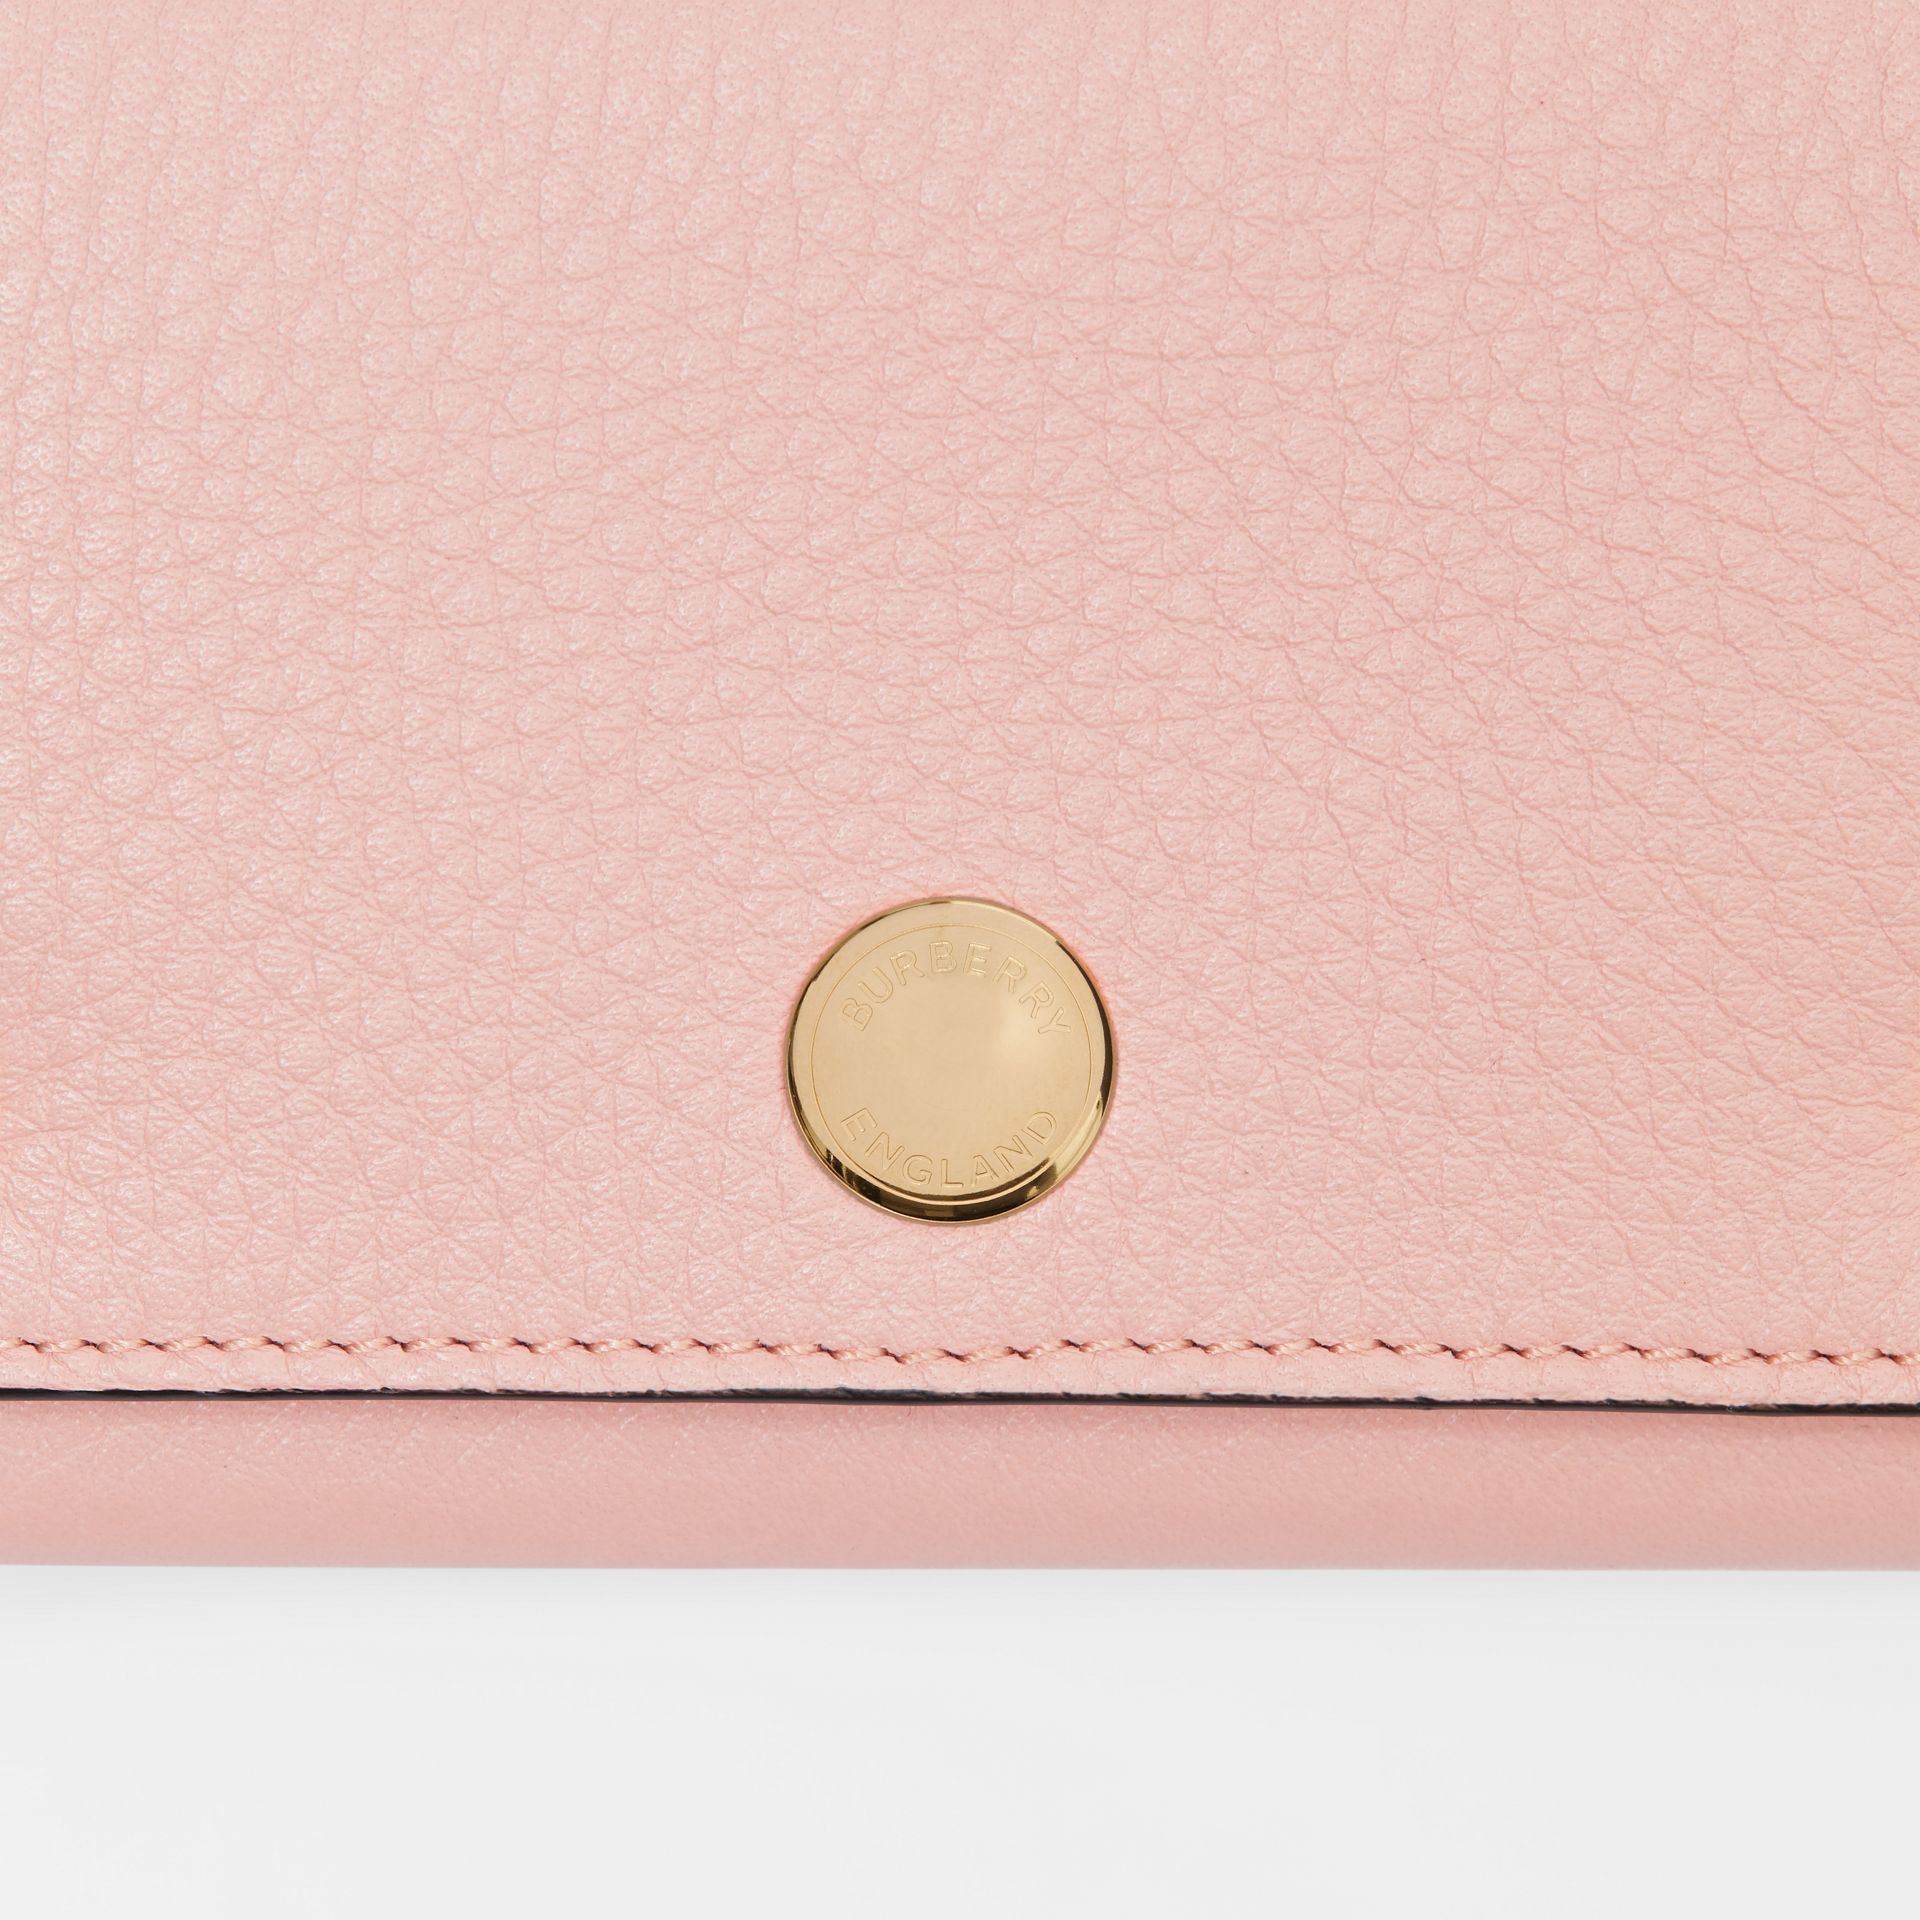 Triple Stud Leather Folding Wallet in Pale Ash Rose - Women | Burberry - gallery image 1